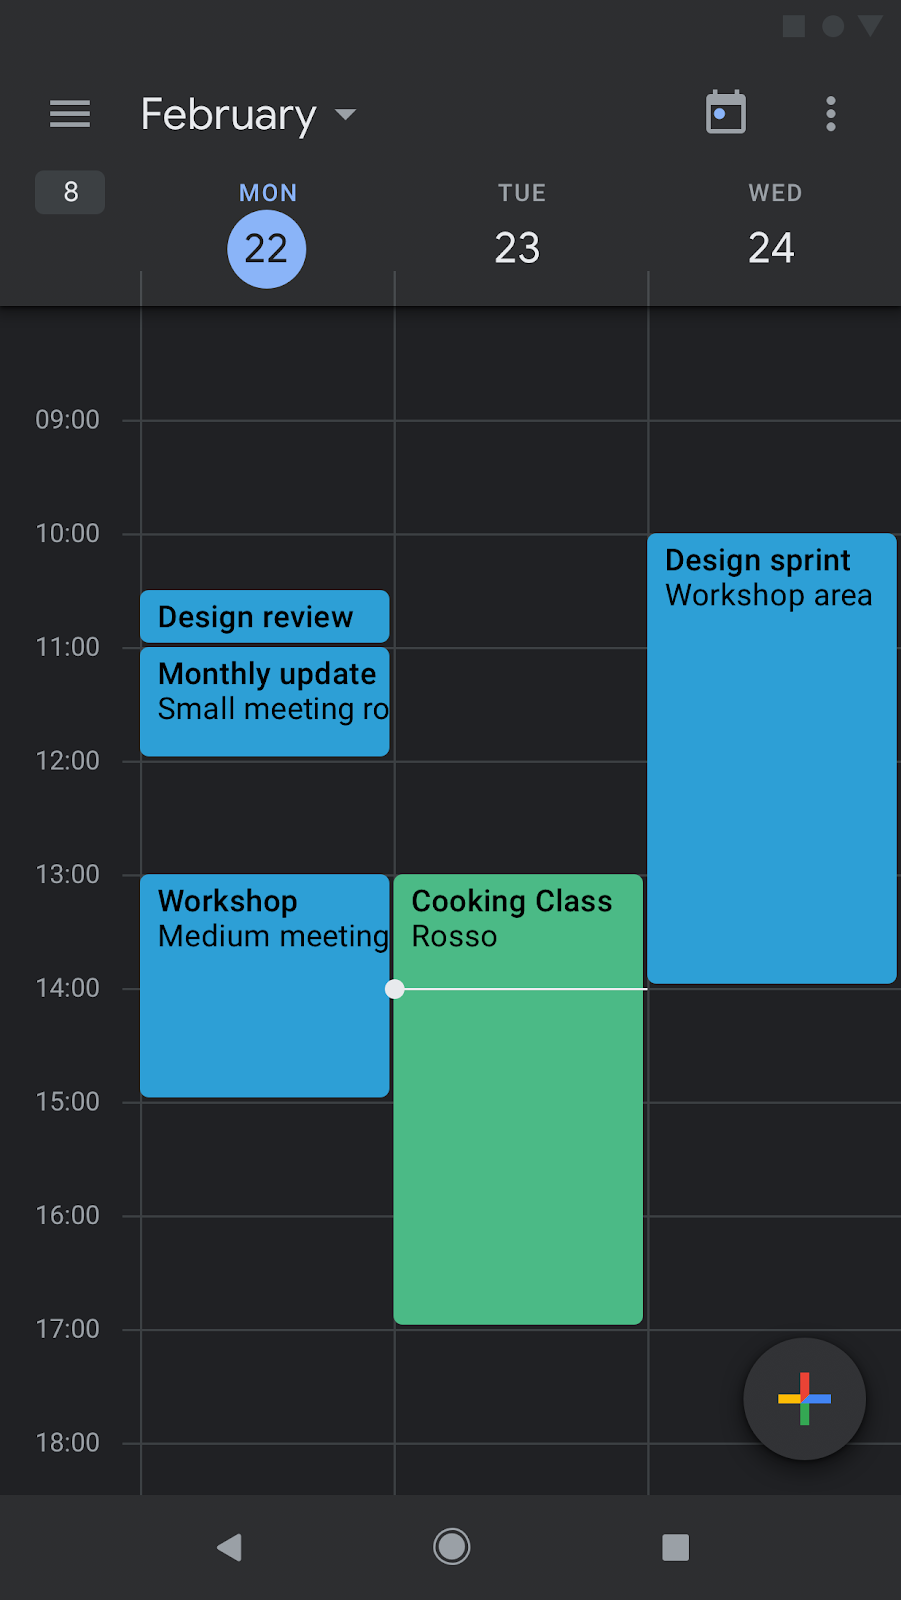 Dark modes are here for Google Calendar and Google Keep - The Verge